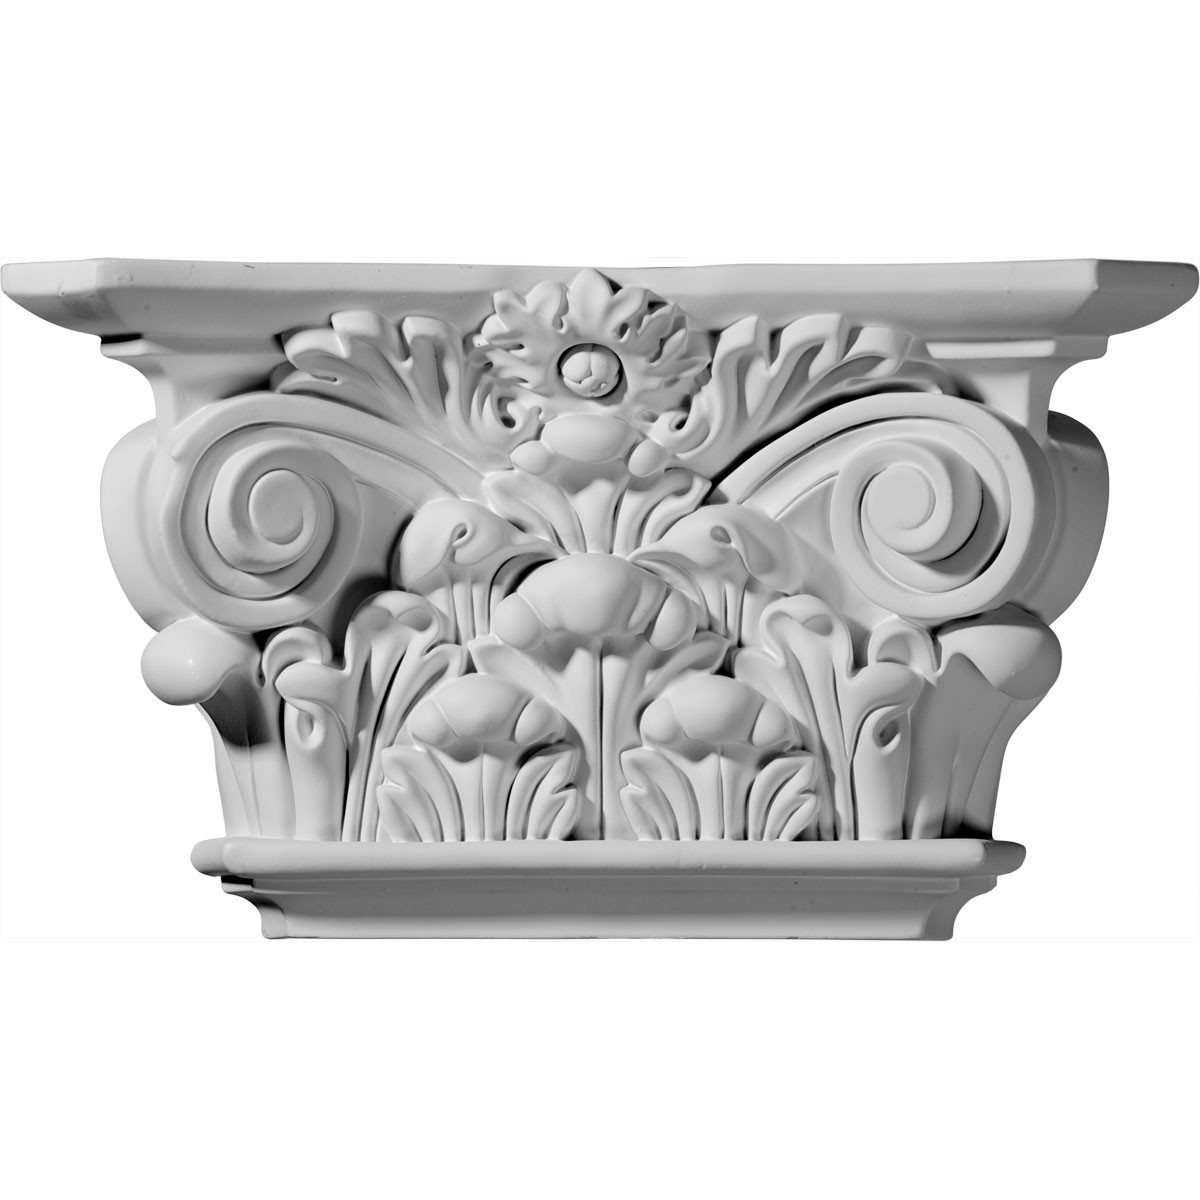 """EM-CAP12X06X03AC - 12 1/4""""W x 6 7/8""""H x 3 1/2""""D Acanthus Leaf Capital (Fits Pilasters up to 6 5/8""""W x 1 1/8""""D)"""